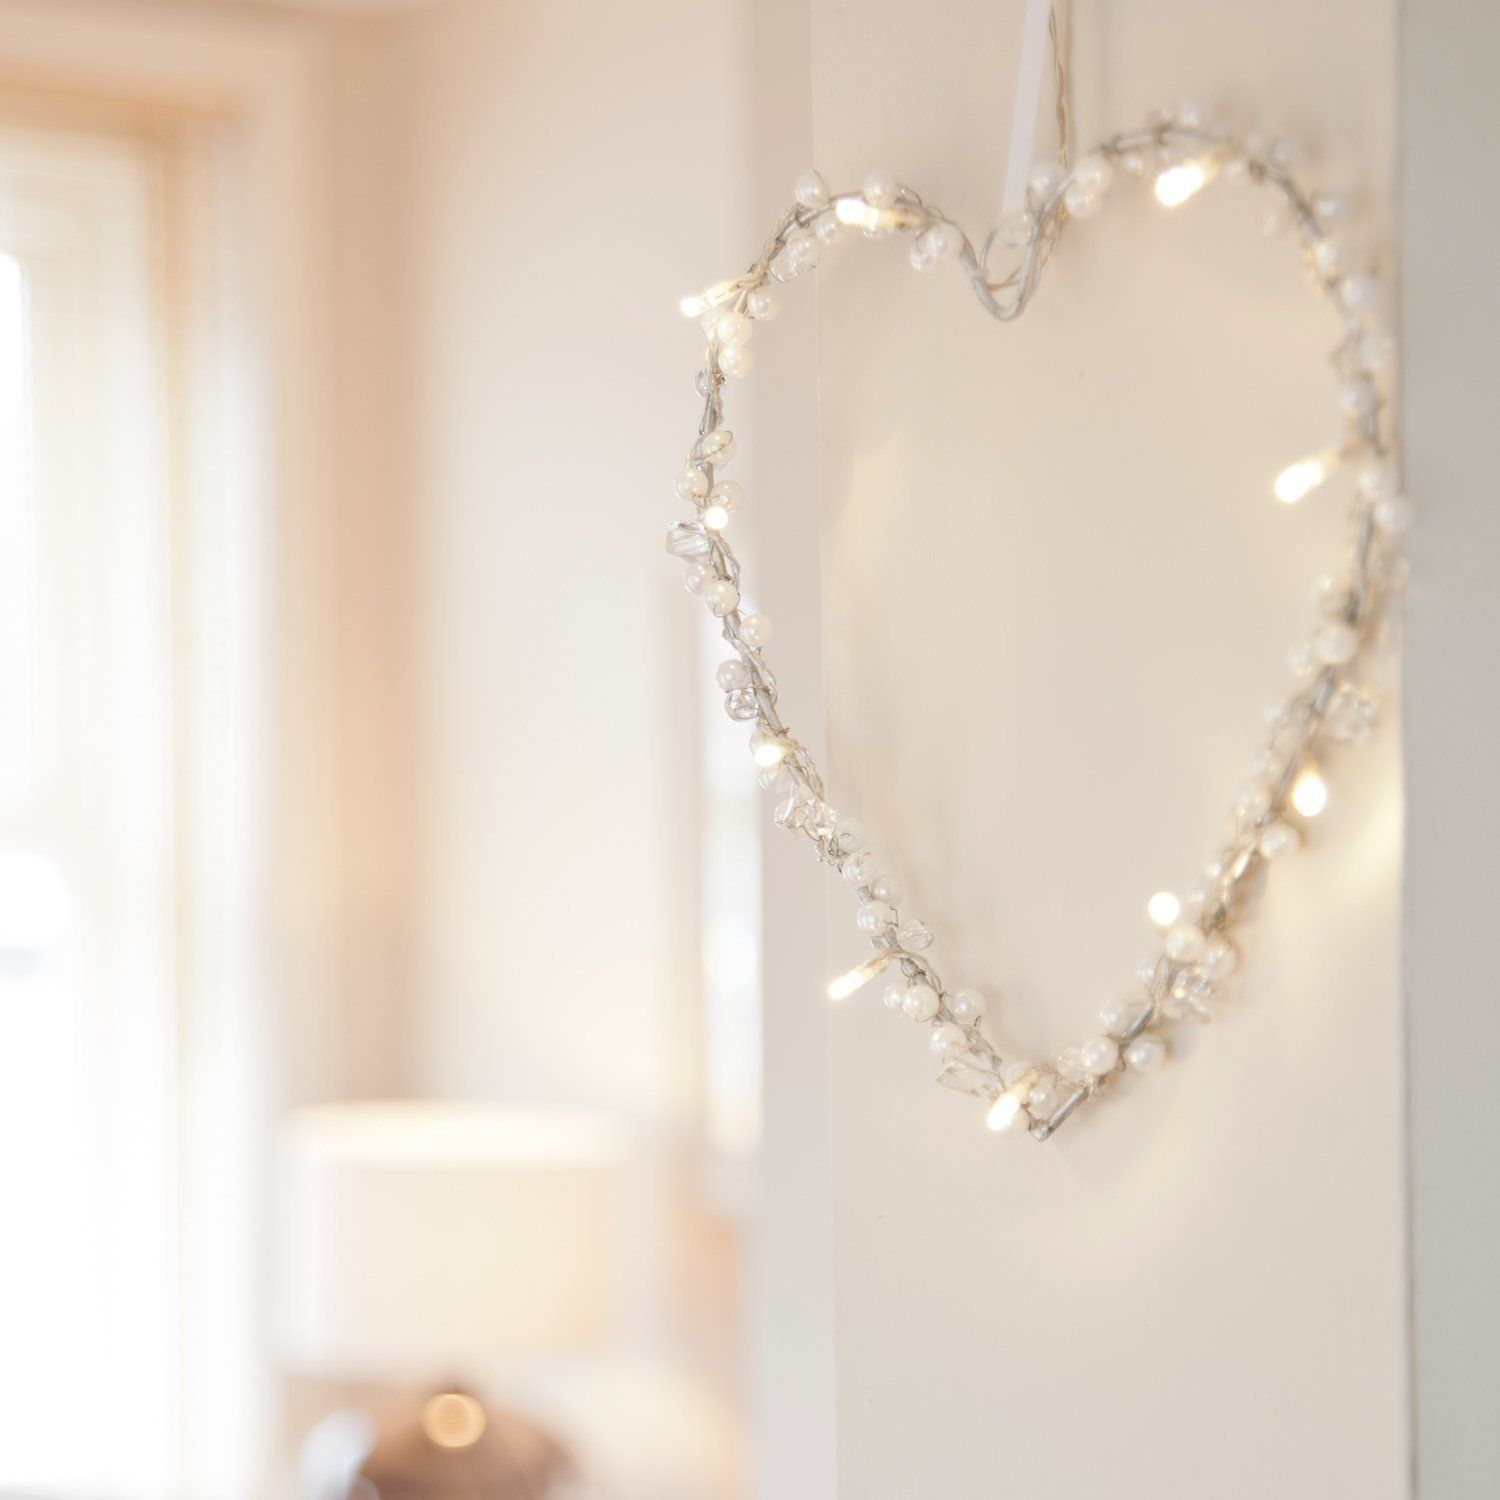 Bethlehem lights wreath battery operated - Battery Operated Heart Fairy Light Wreath With 10 Warm White Leds By